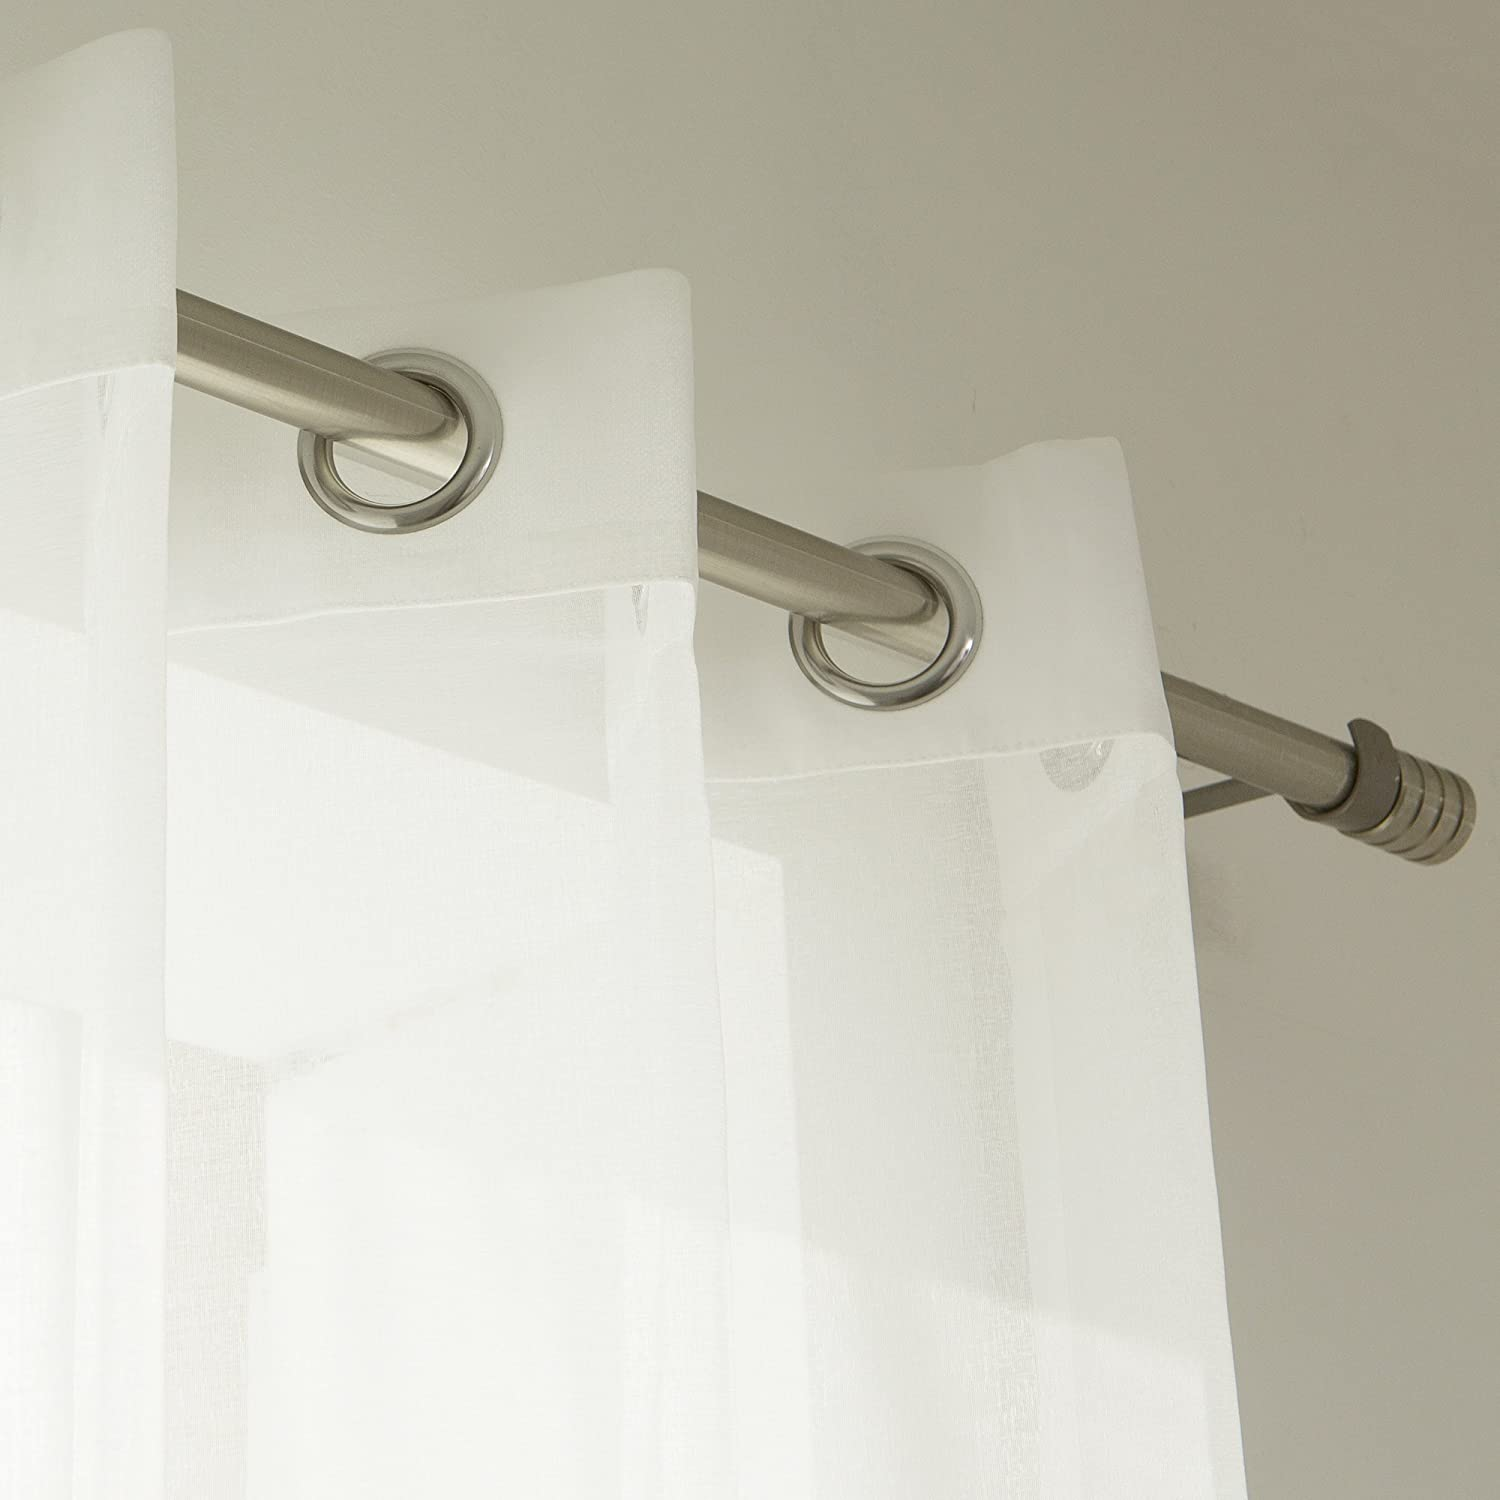 Best Home Fashion Muji Sheer Linen Look Curtains Stainless Steel Nickel Grommet Top White – 52 W x 84 L – Set of 2 Panels